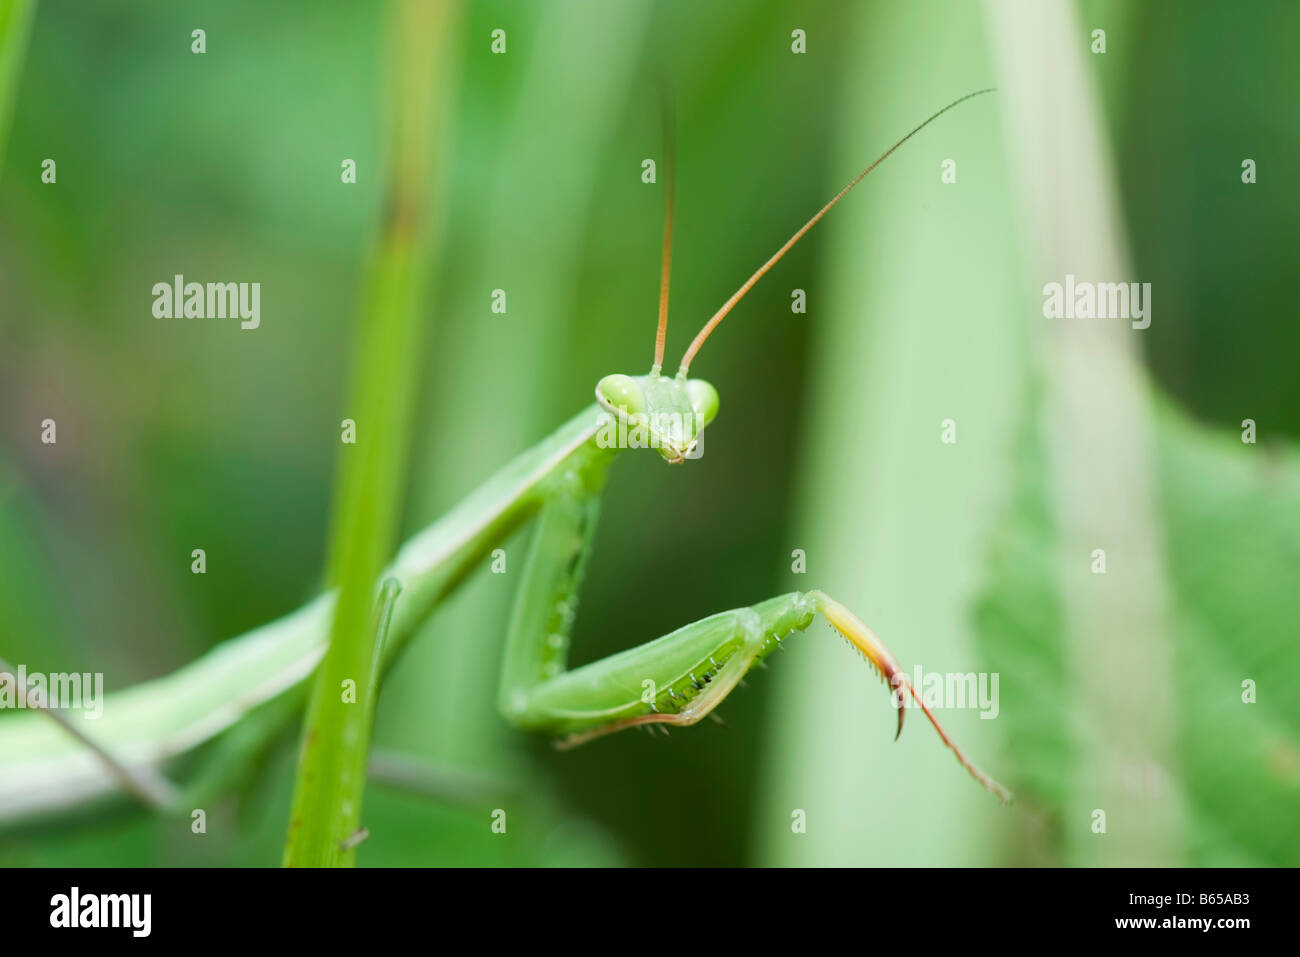 Praying Mantis partially concealed by greenery - Stock Image